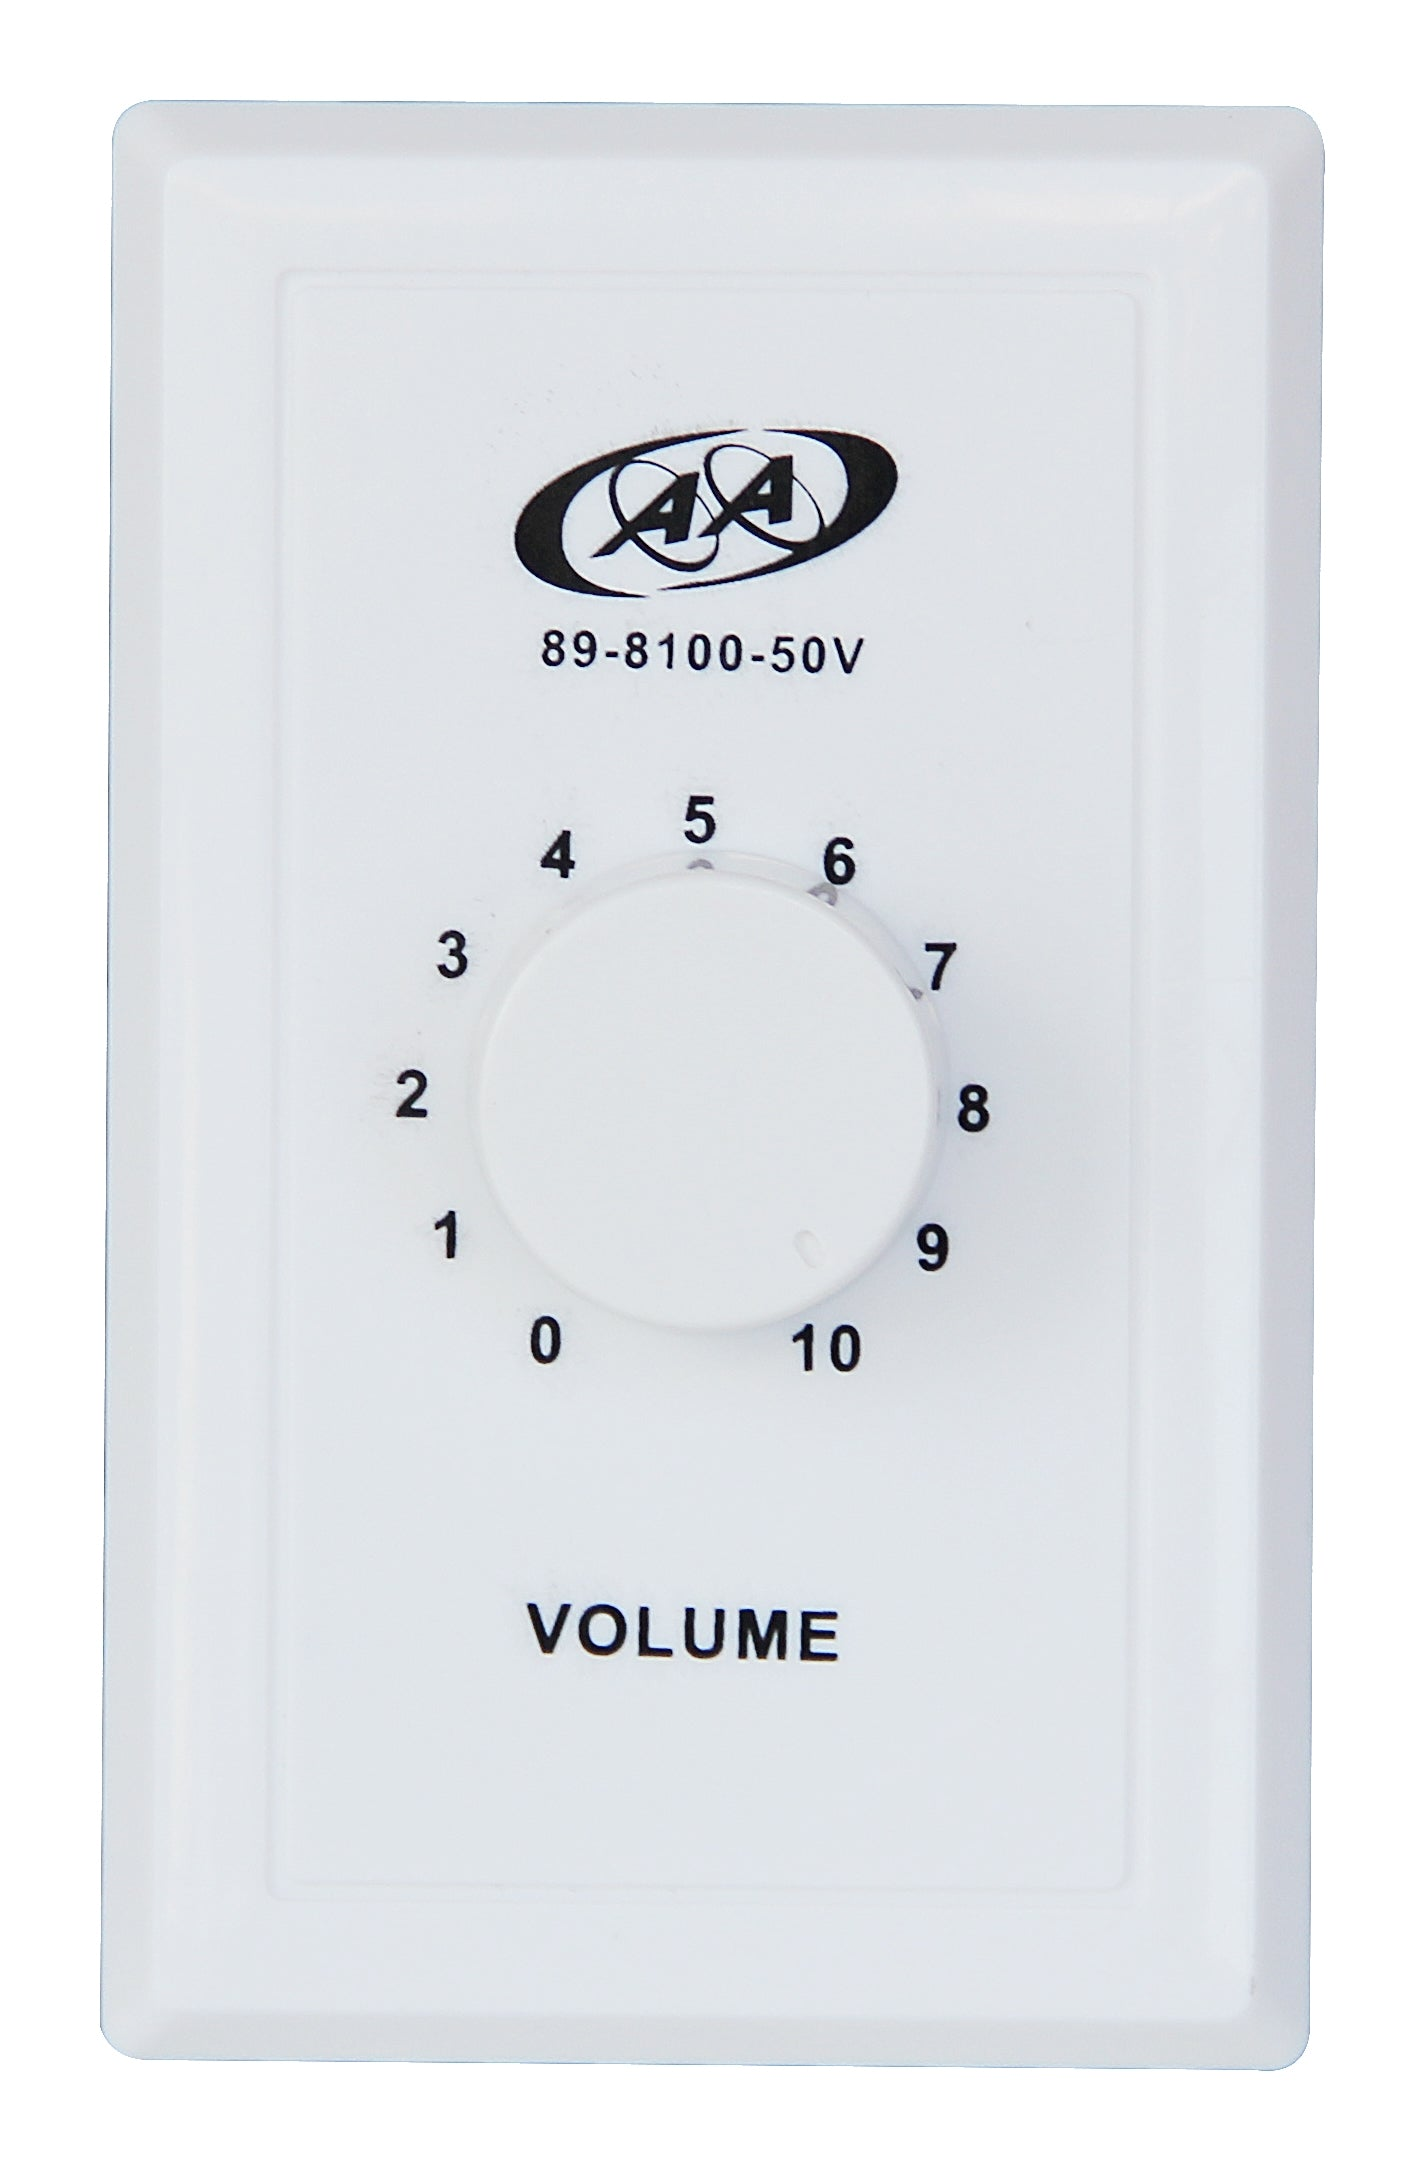 89-8100-50V Line Voltage Speaker Volume Control - 50W